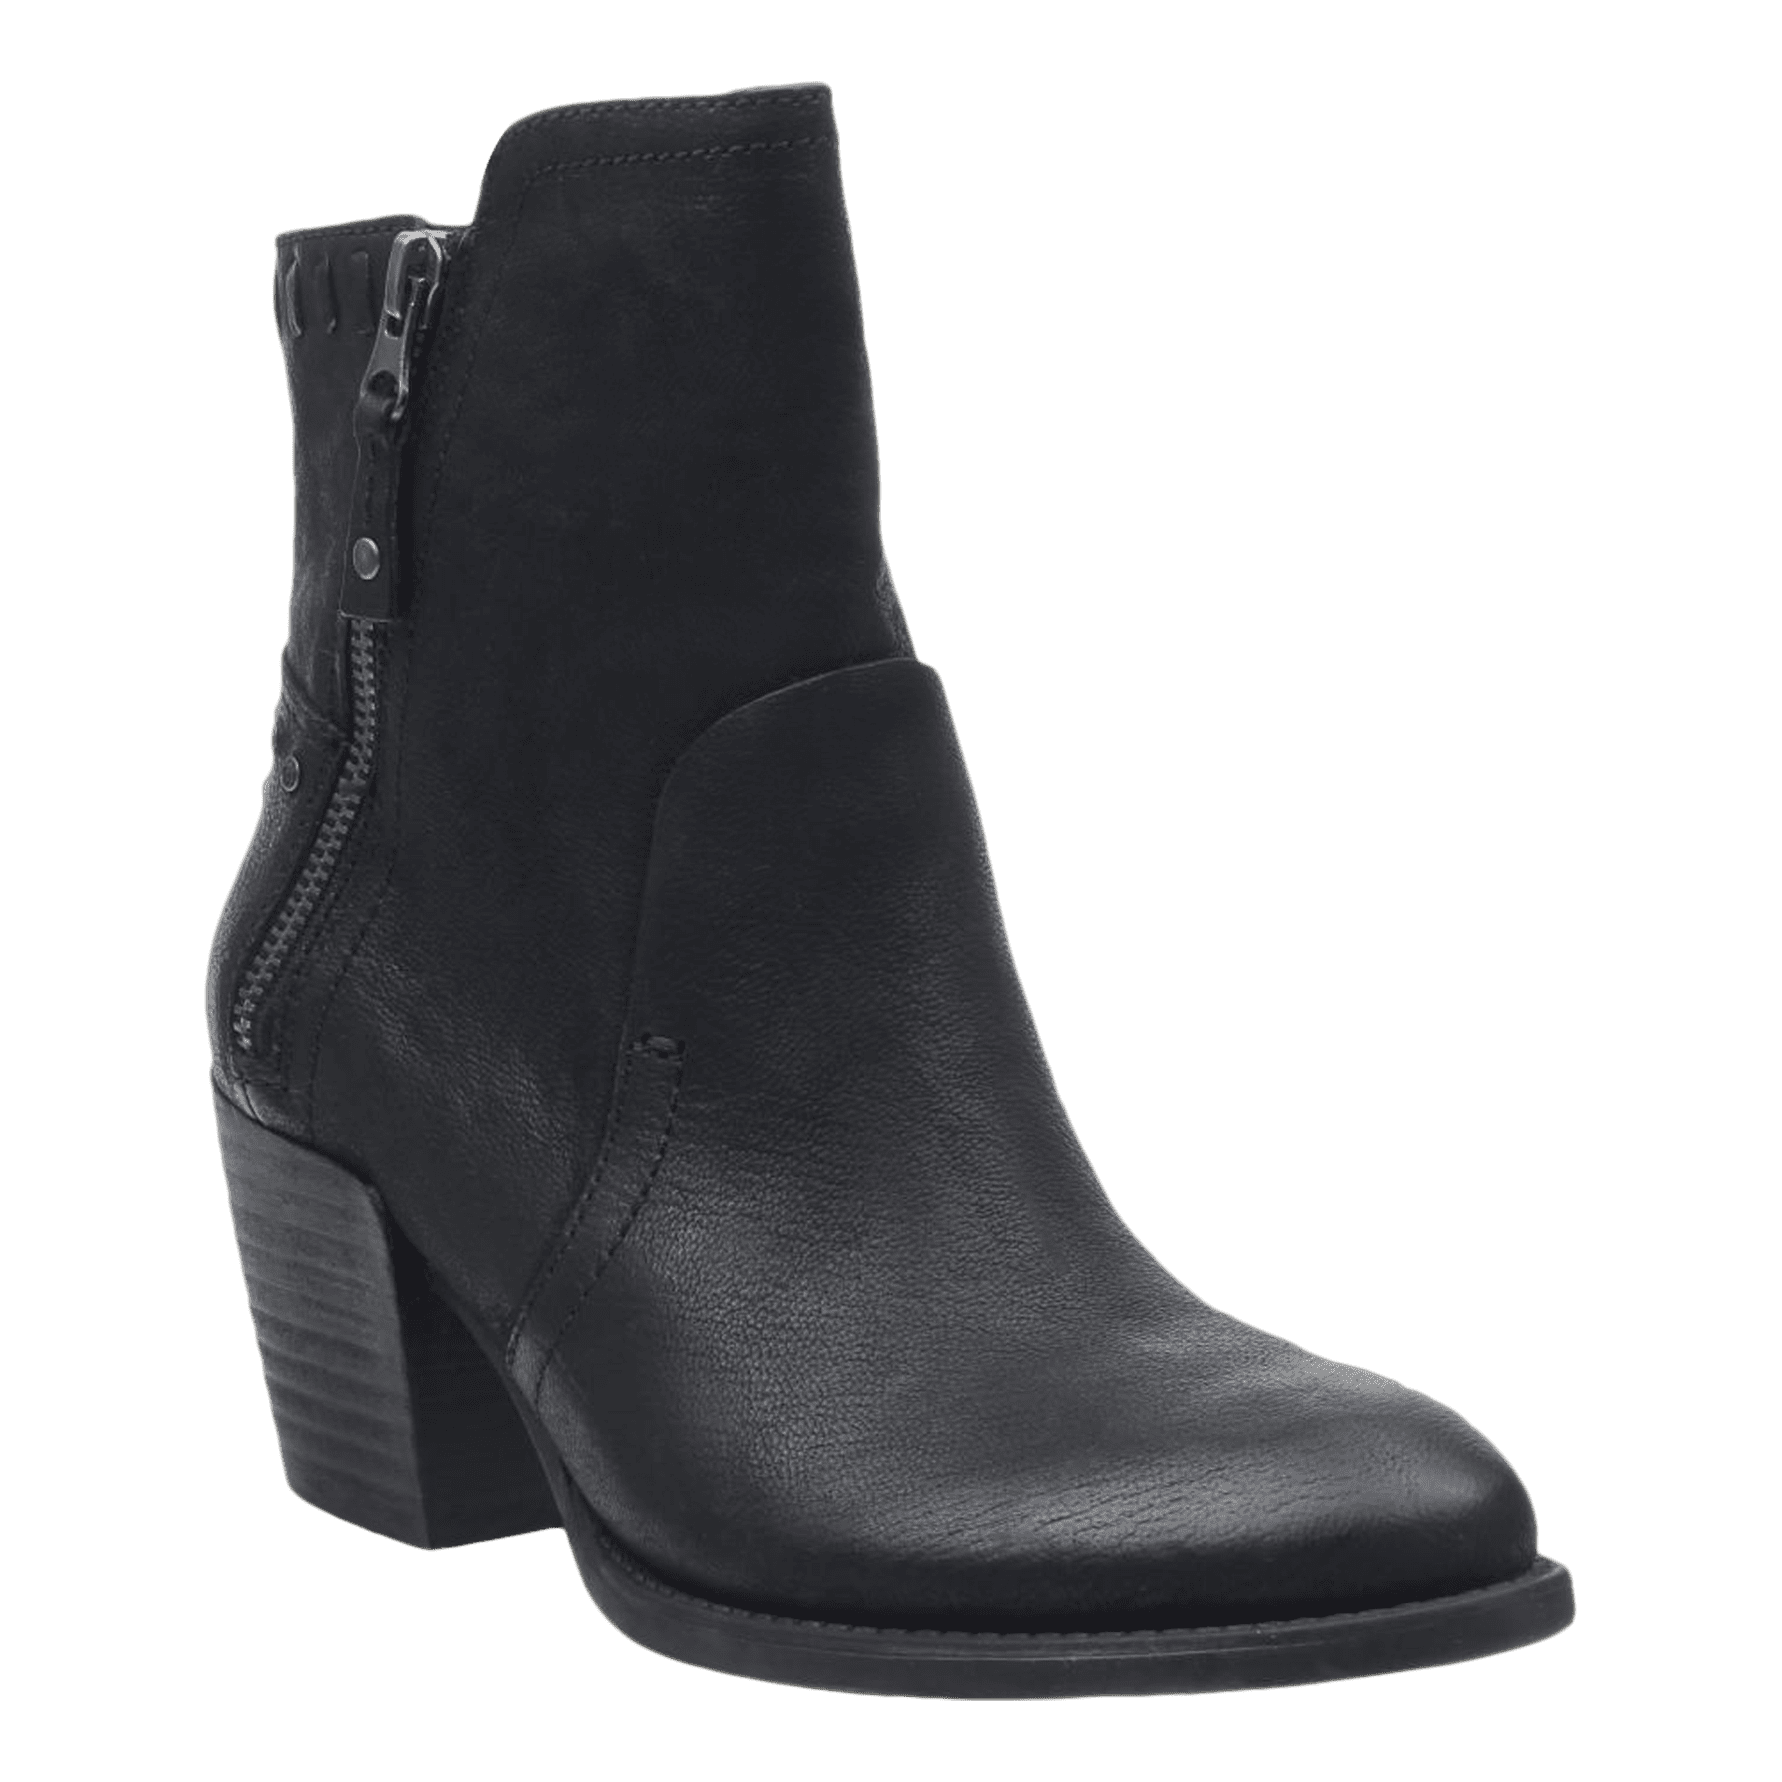 Red Eye in Black Ankle Boots | Women's